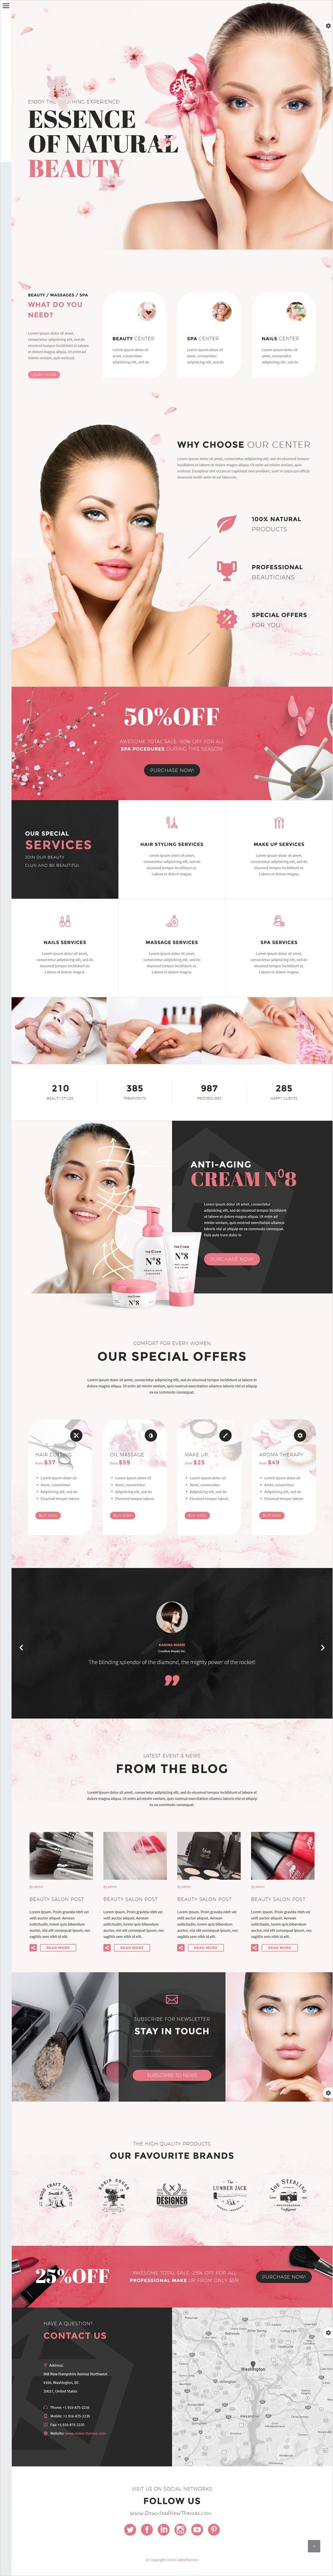 TheGem is a versatile #WordPress theme with modern creative design for #spa #beauty #salon website with 40+ stunning homepage layouts download now➩ https://themeforest.net/item/thegem-creative-multipurpose-wordpress-theme/16061685?ref=Datasata